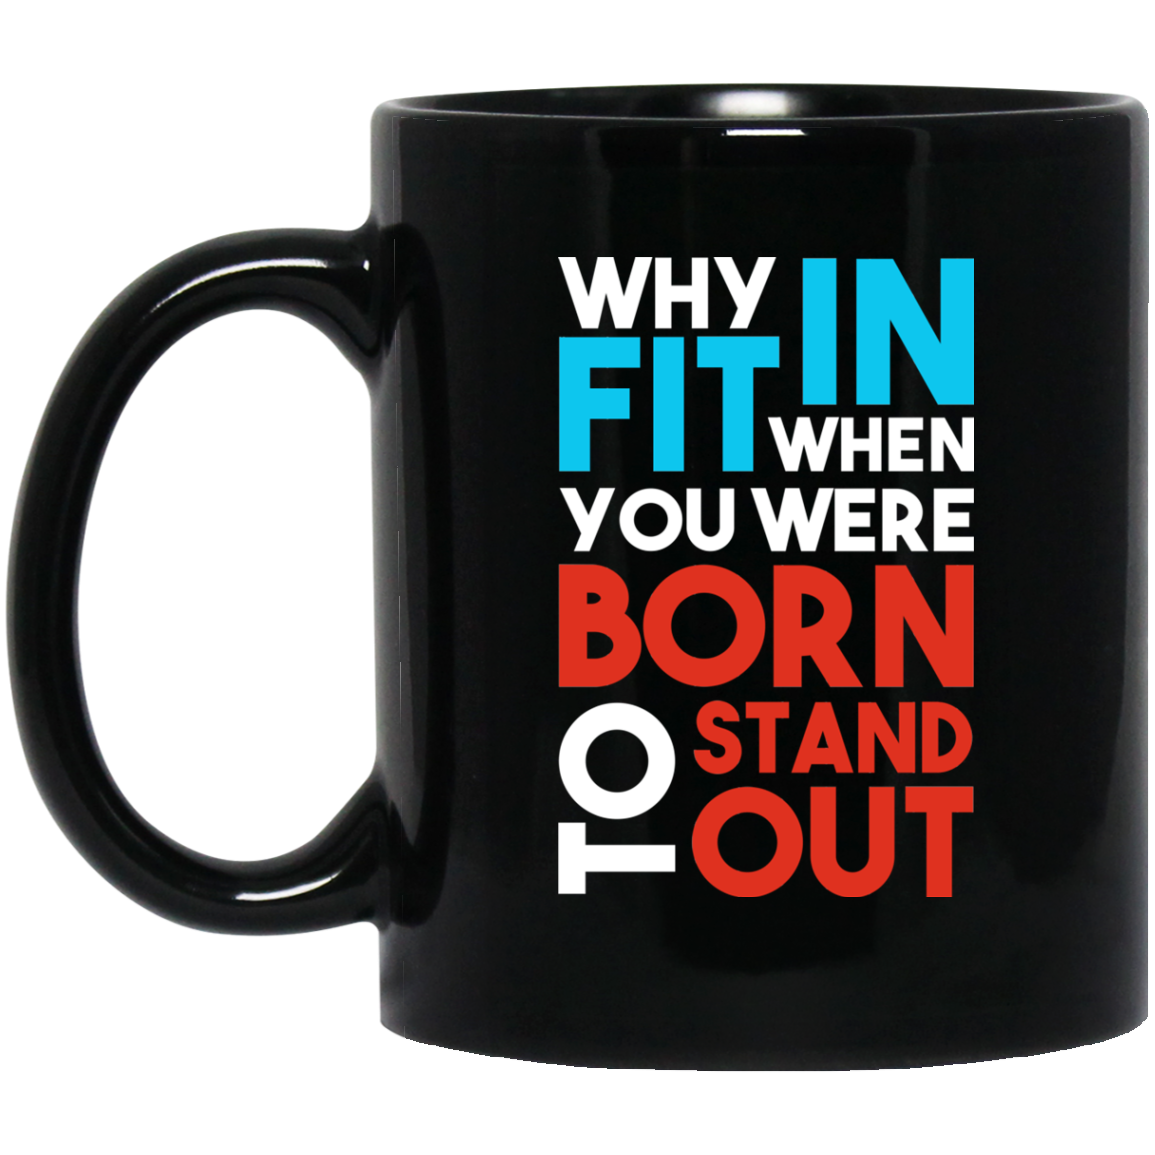 Dr. Seuss Mug Why Fit In When You Were Born To Stand Out Mug